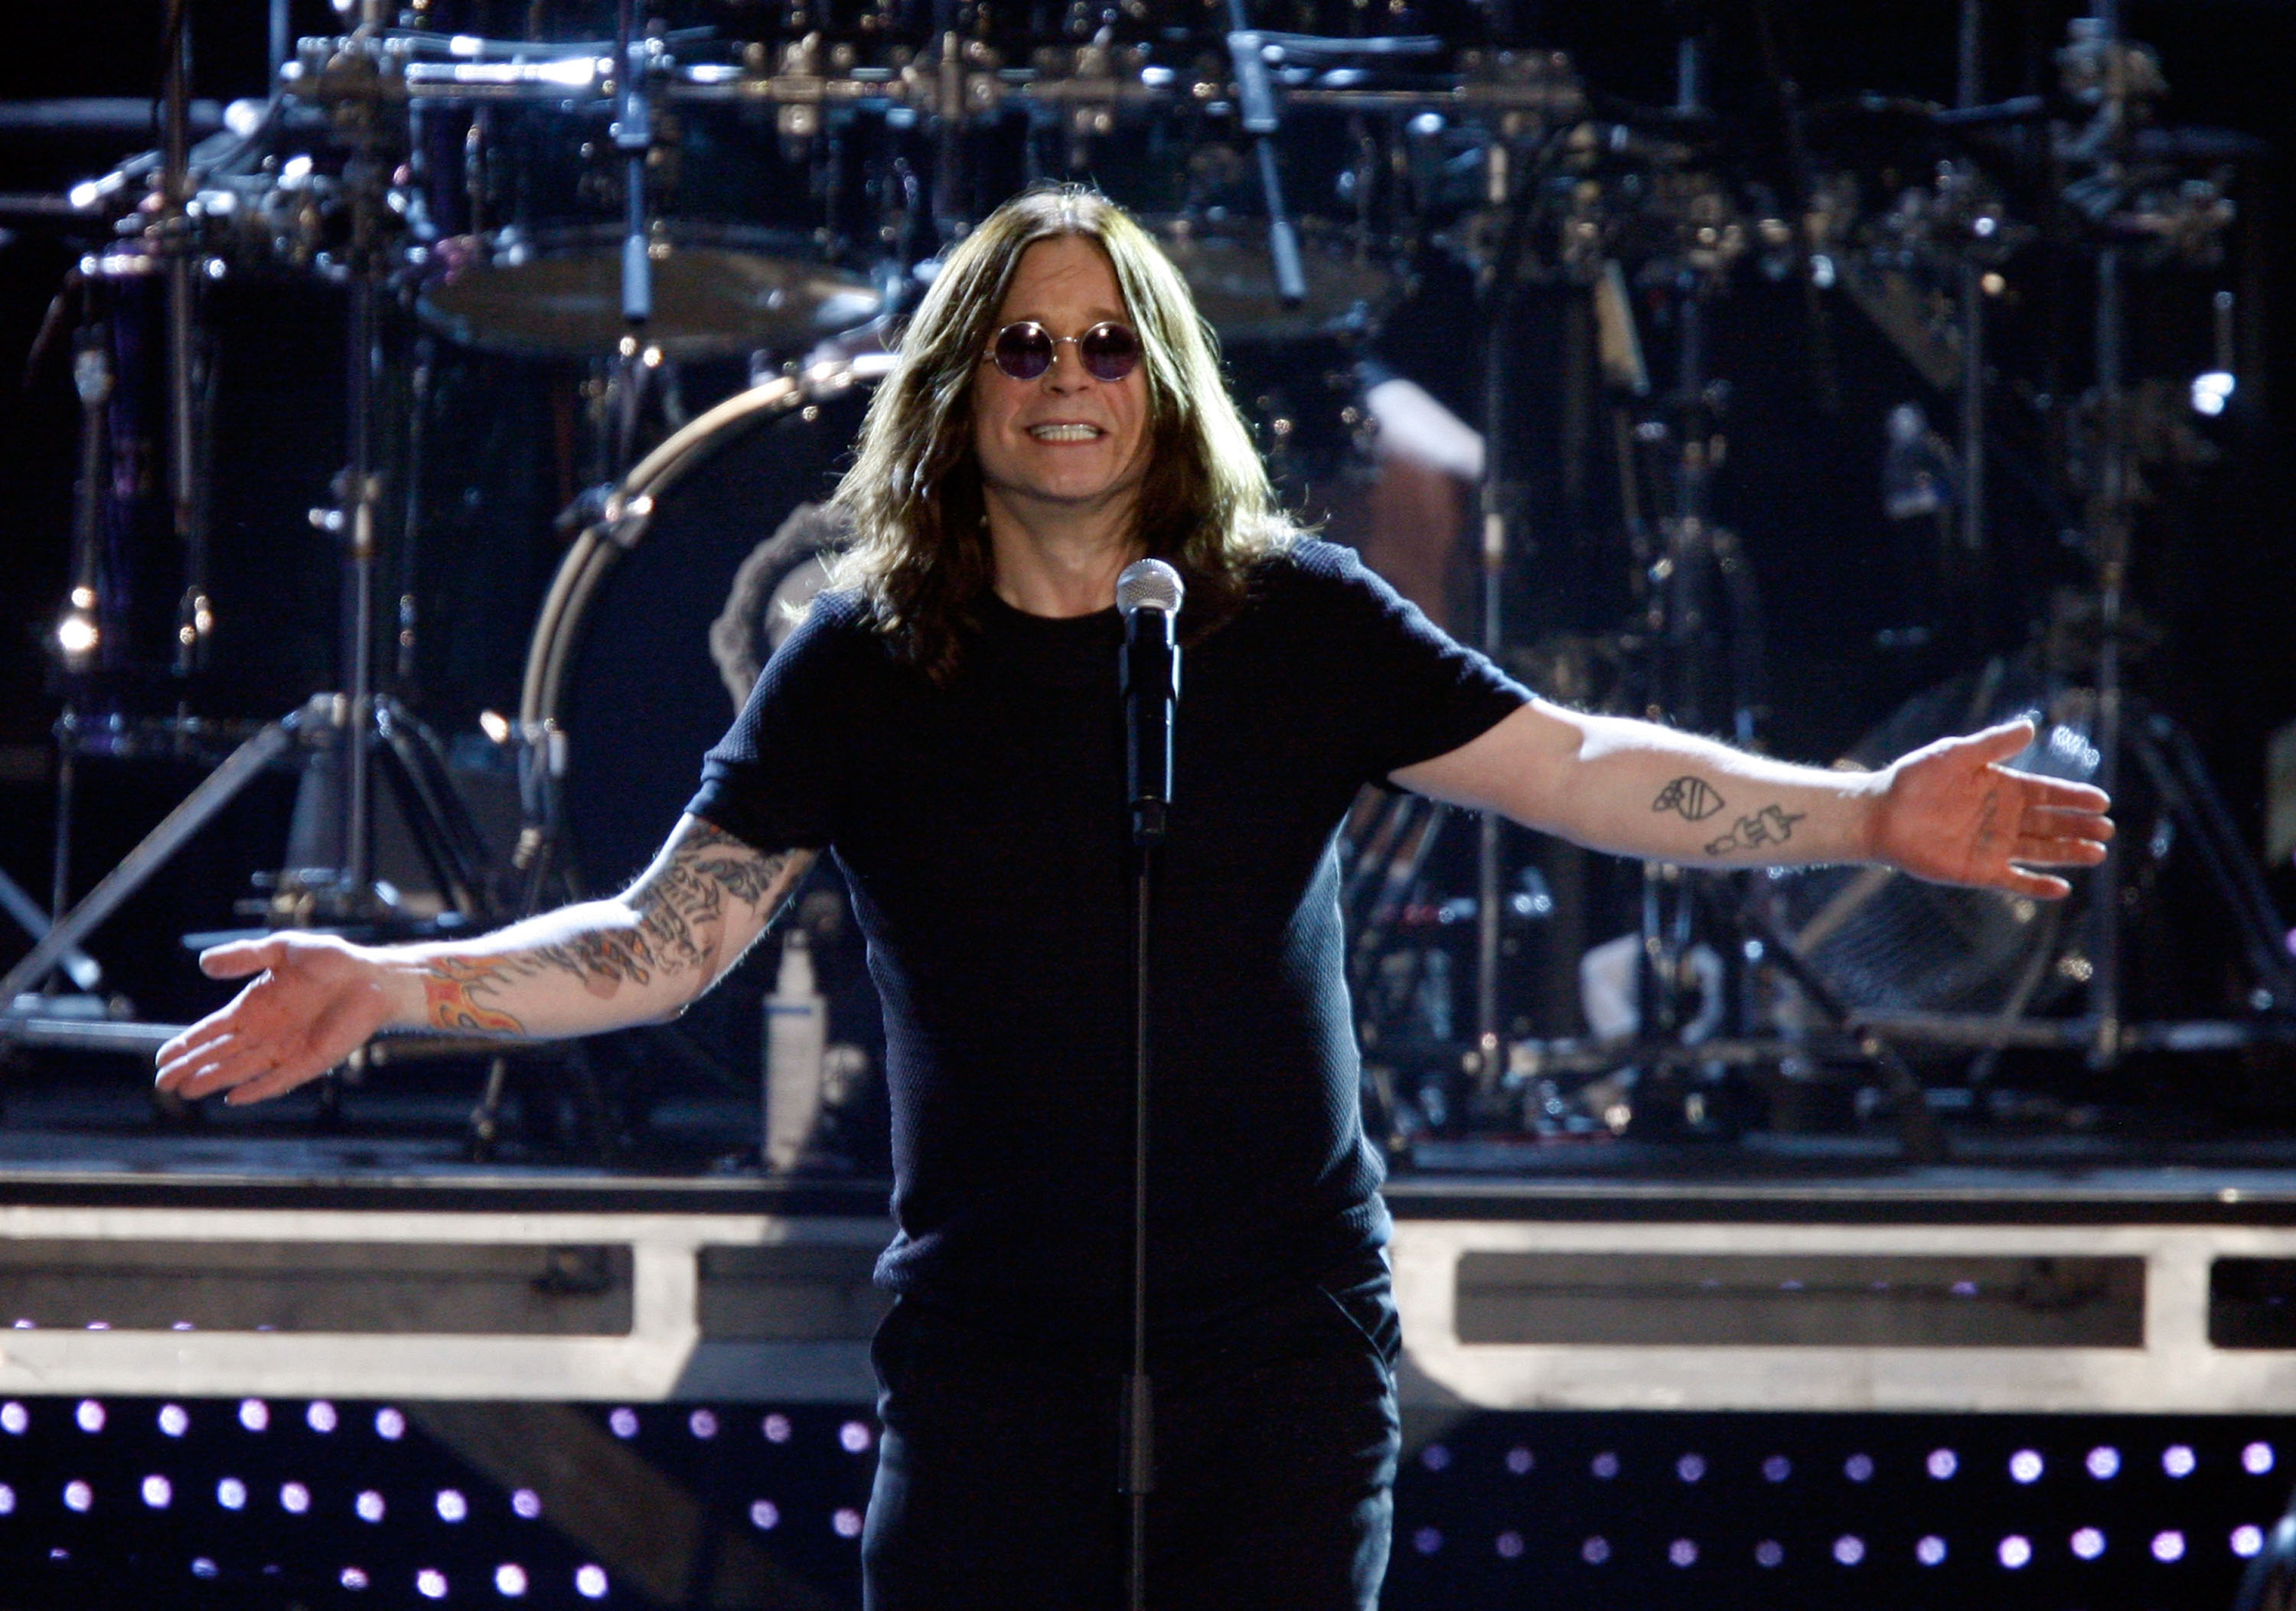 Ozzy Osbourne will now play Mattress Firm Amphitheatre on July 23, 2019.